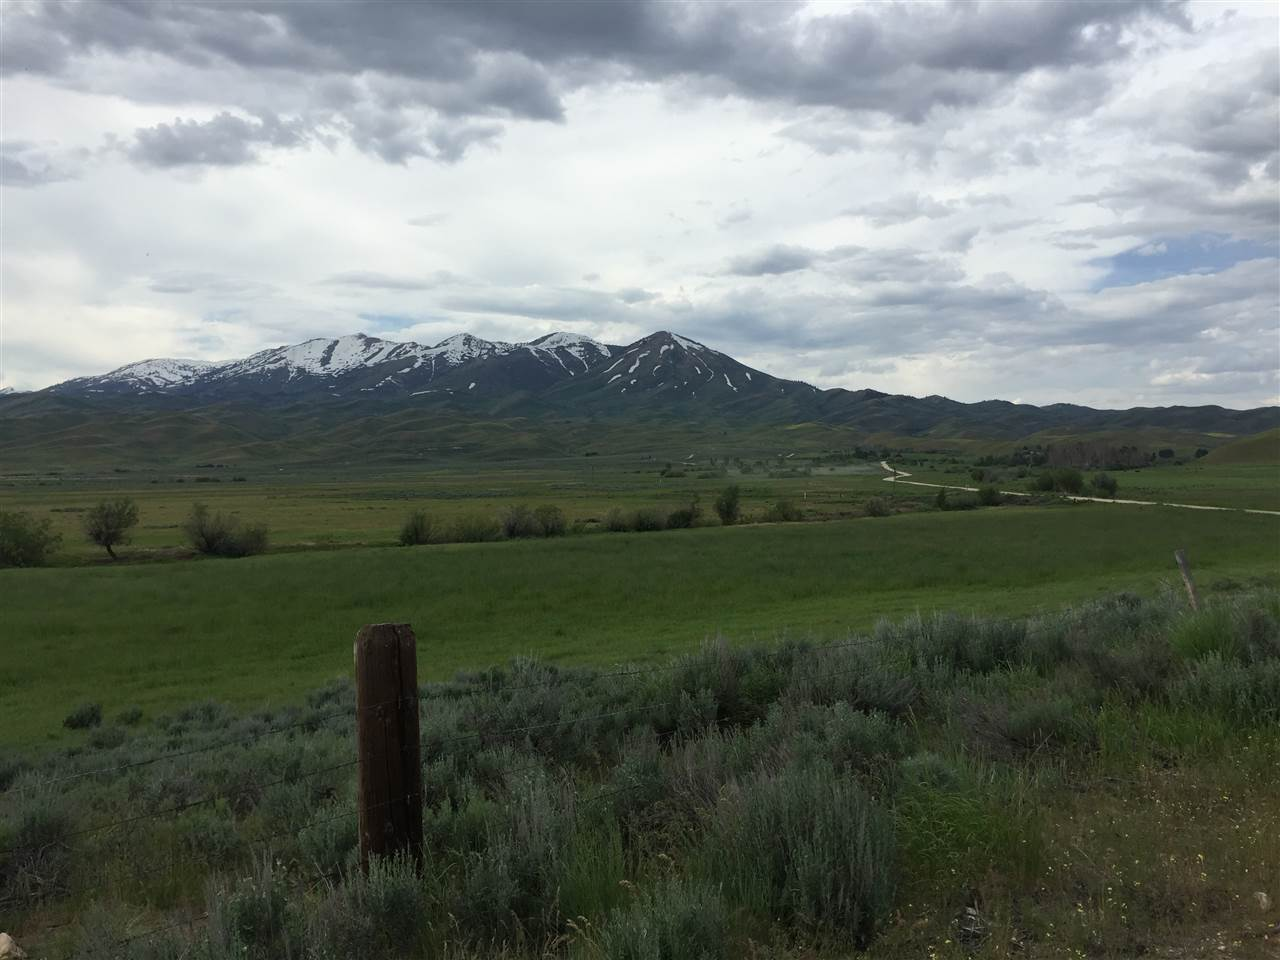 Land for Sale at 550 West 500 North (Soldier Mtn Ranch & Resort 550 West 500 North (Soldier Mtn Ranch & Resort Fairfield, Idaho 83327